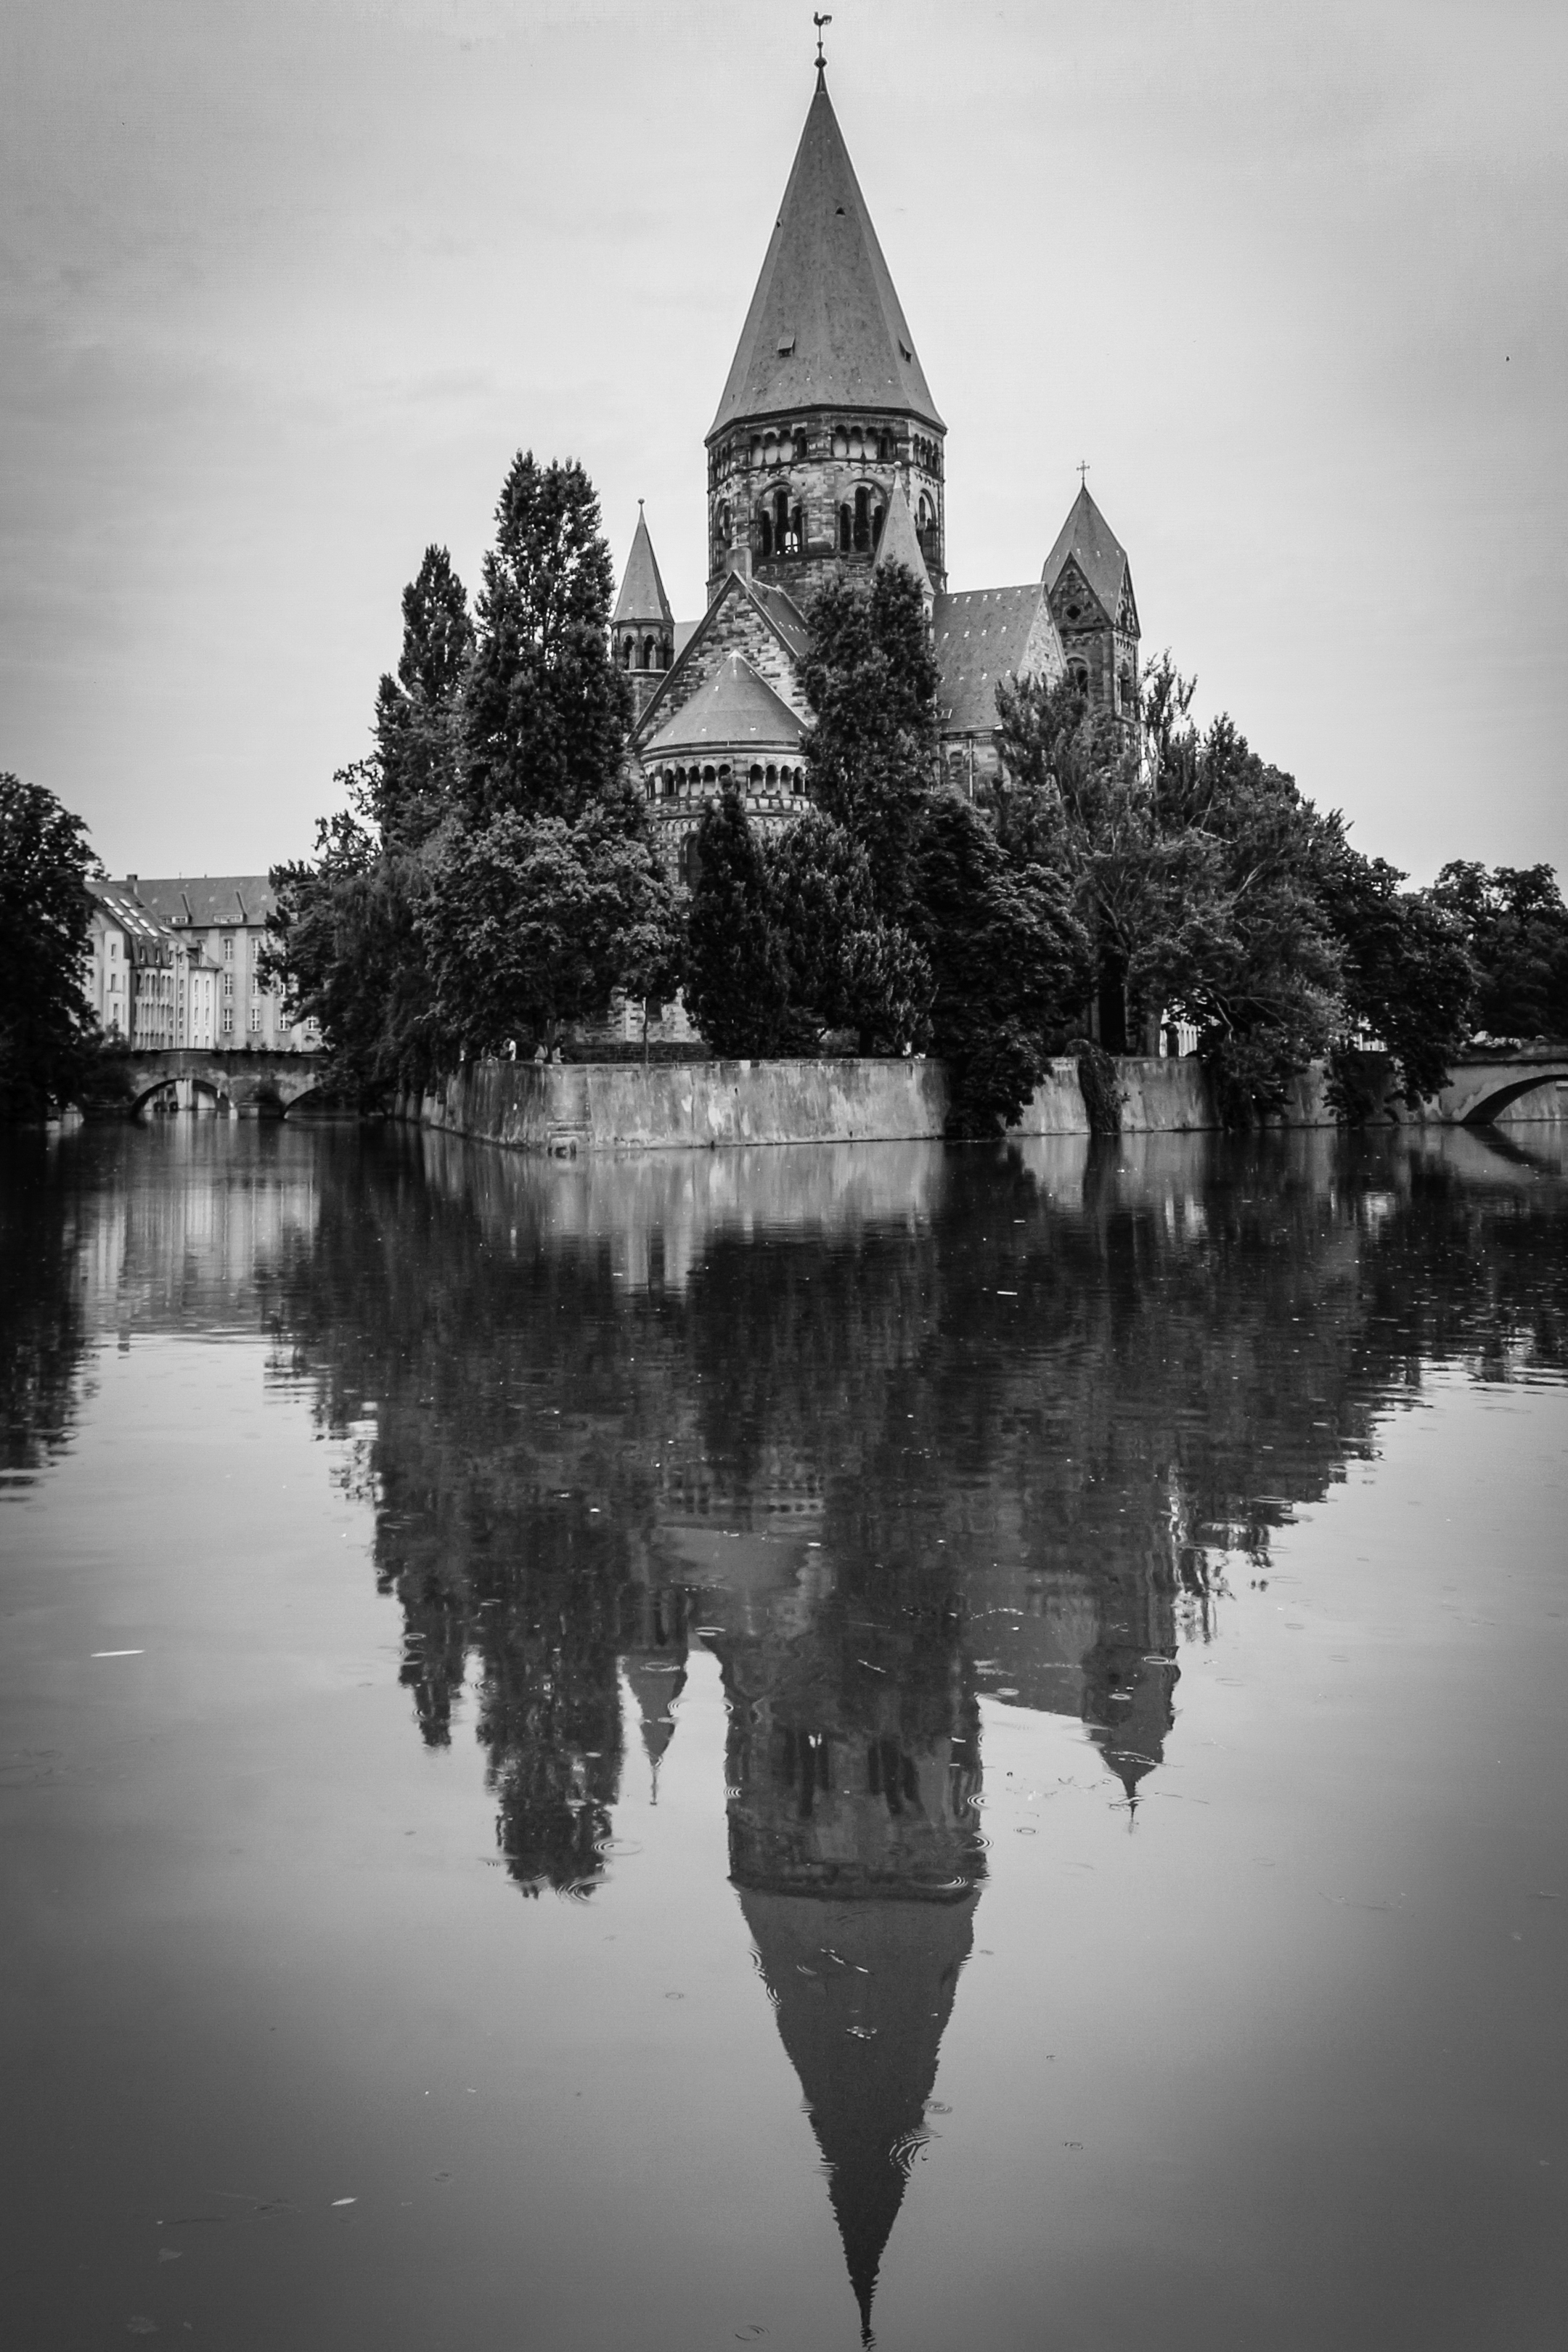 Photographing churches for beginners